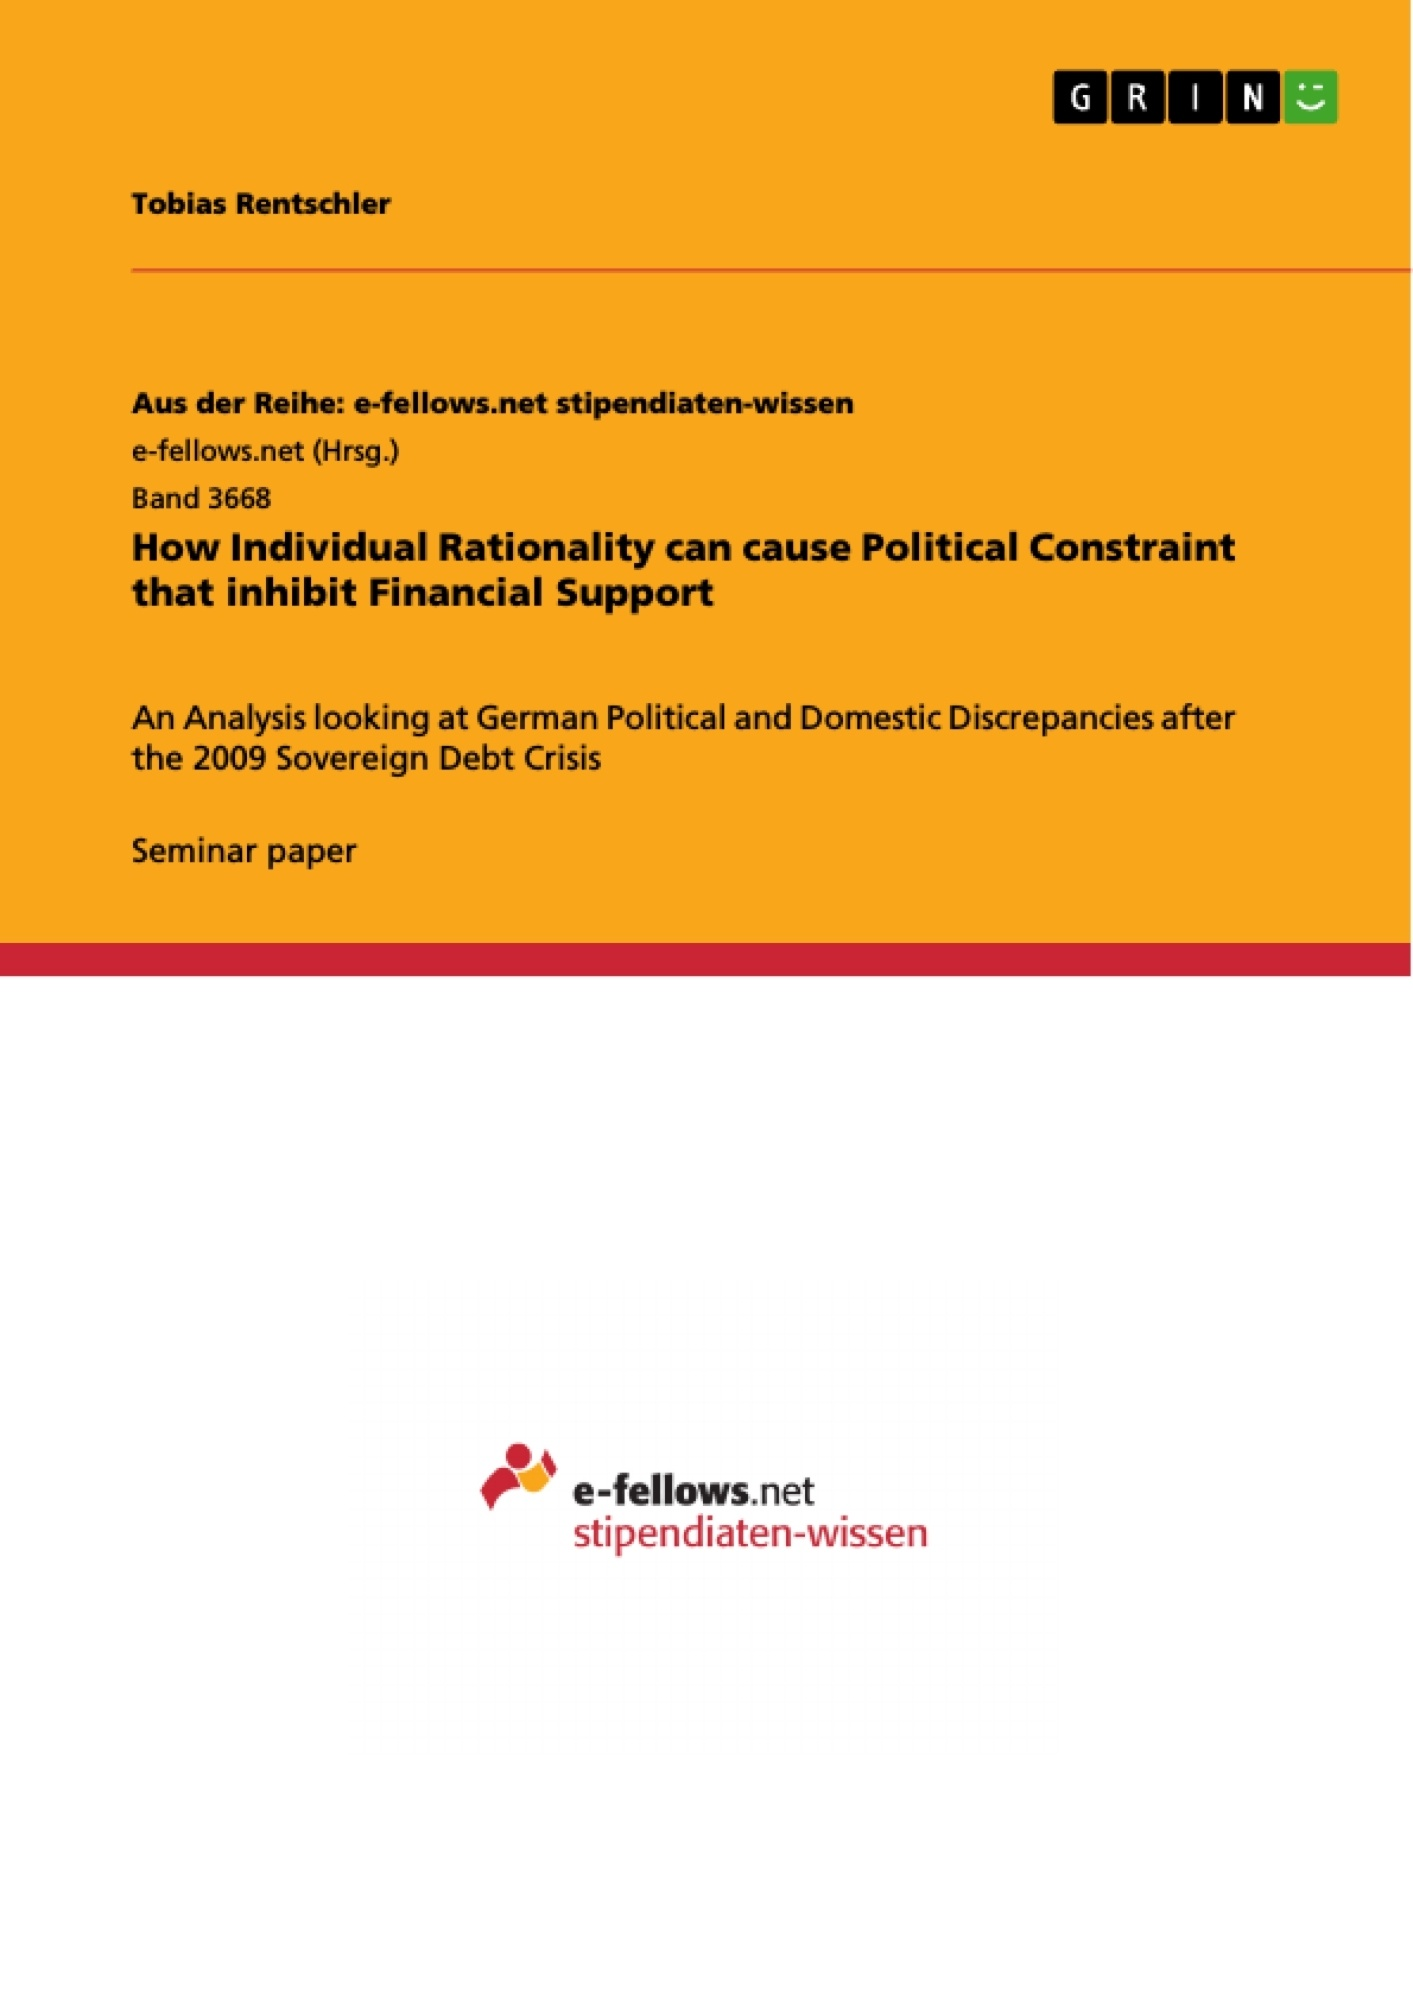 Title: How Individual Rationality can cause Political Constraint that inhibit Financial Support